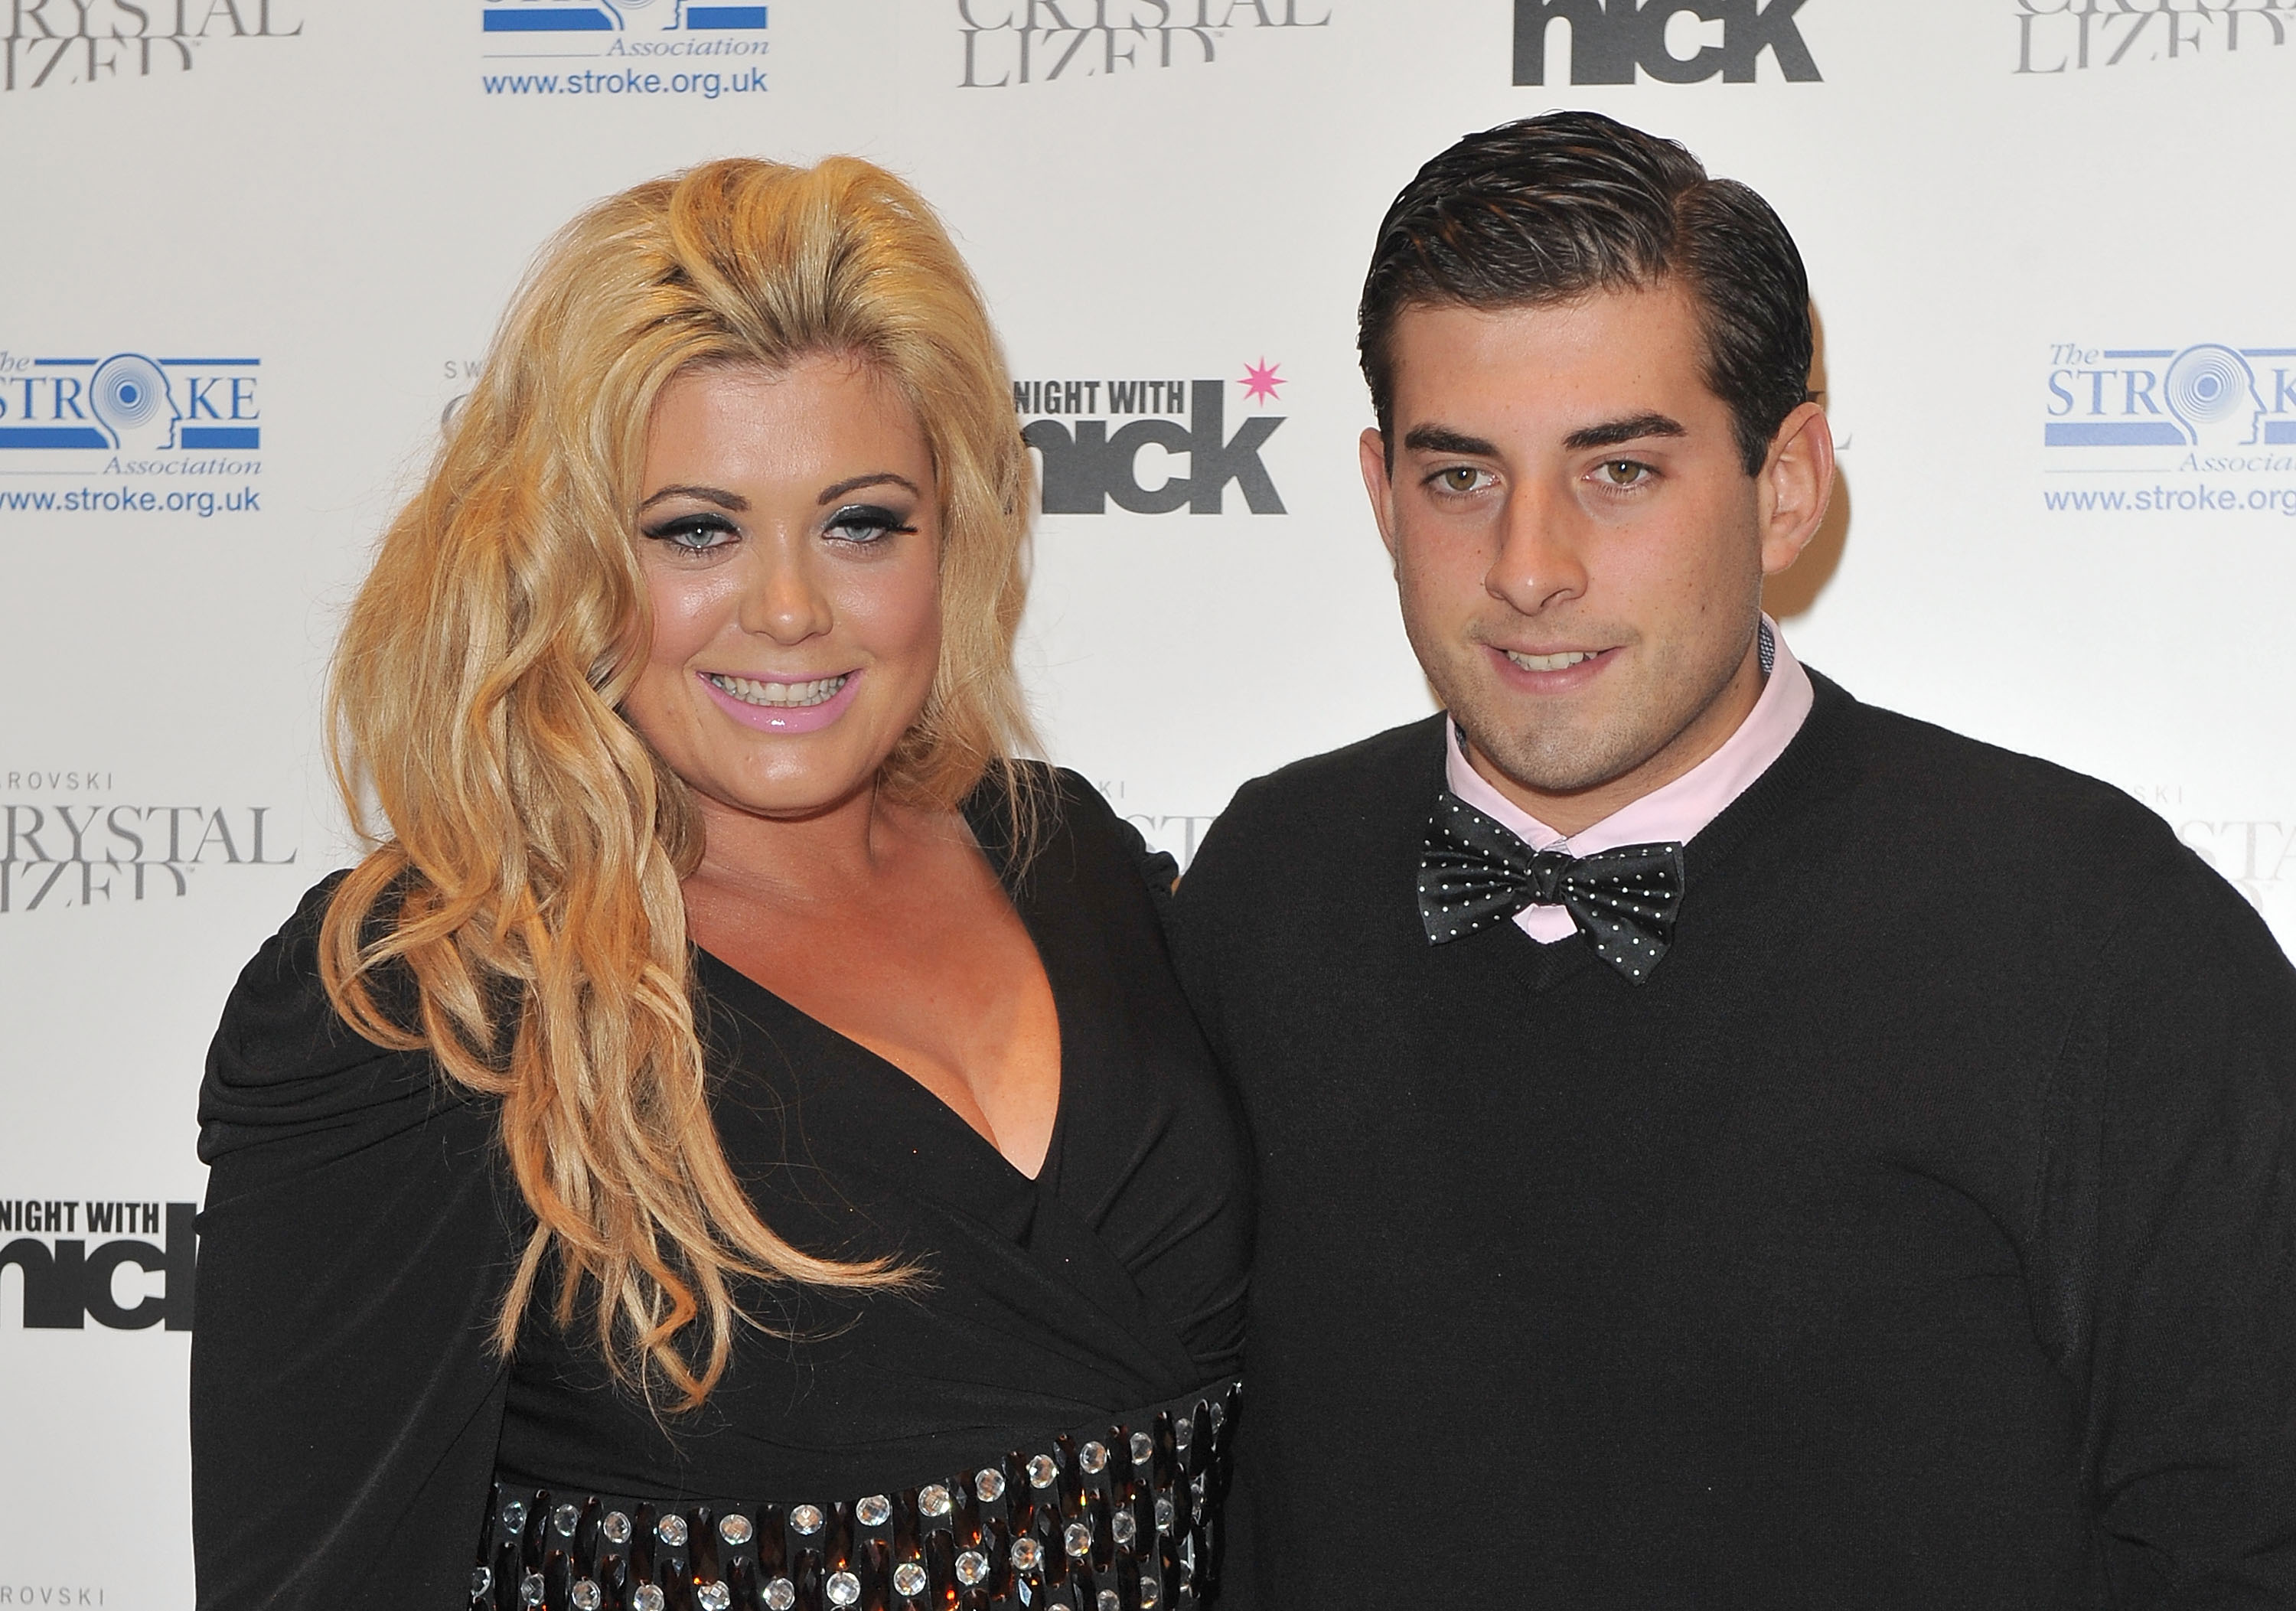 Gemma Collins tries to get over Arg heartbreak by 'joining Celebs Go Dating'